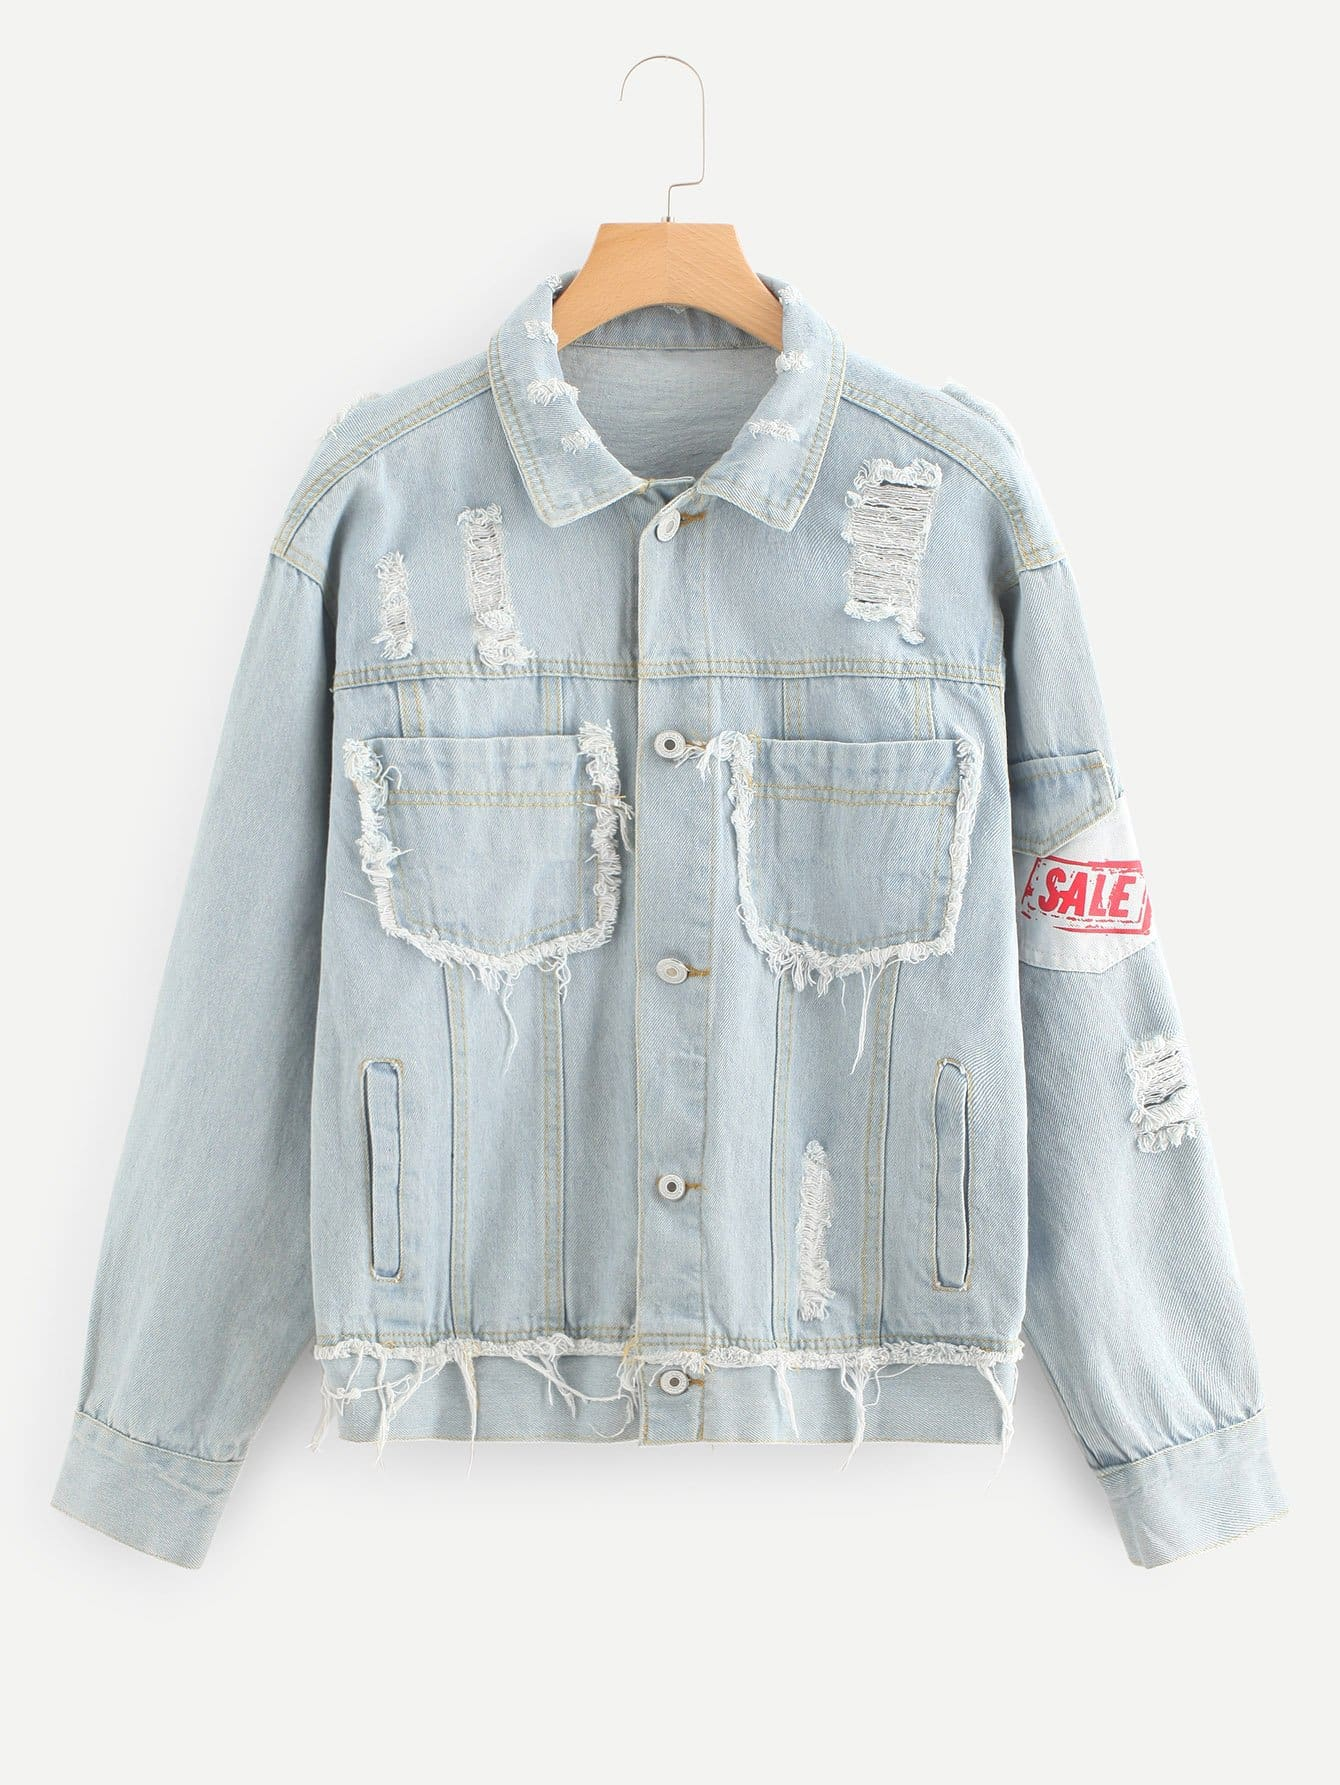 Letter Patched Ripped Denim Jacket men embroidery patched denim jacket